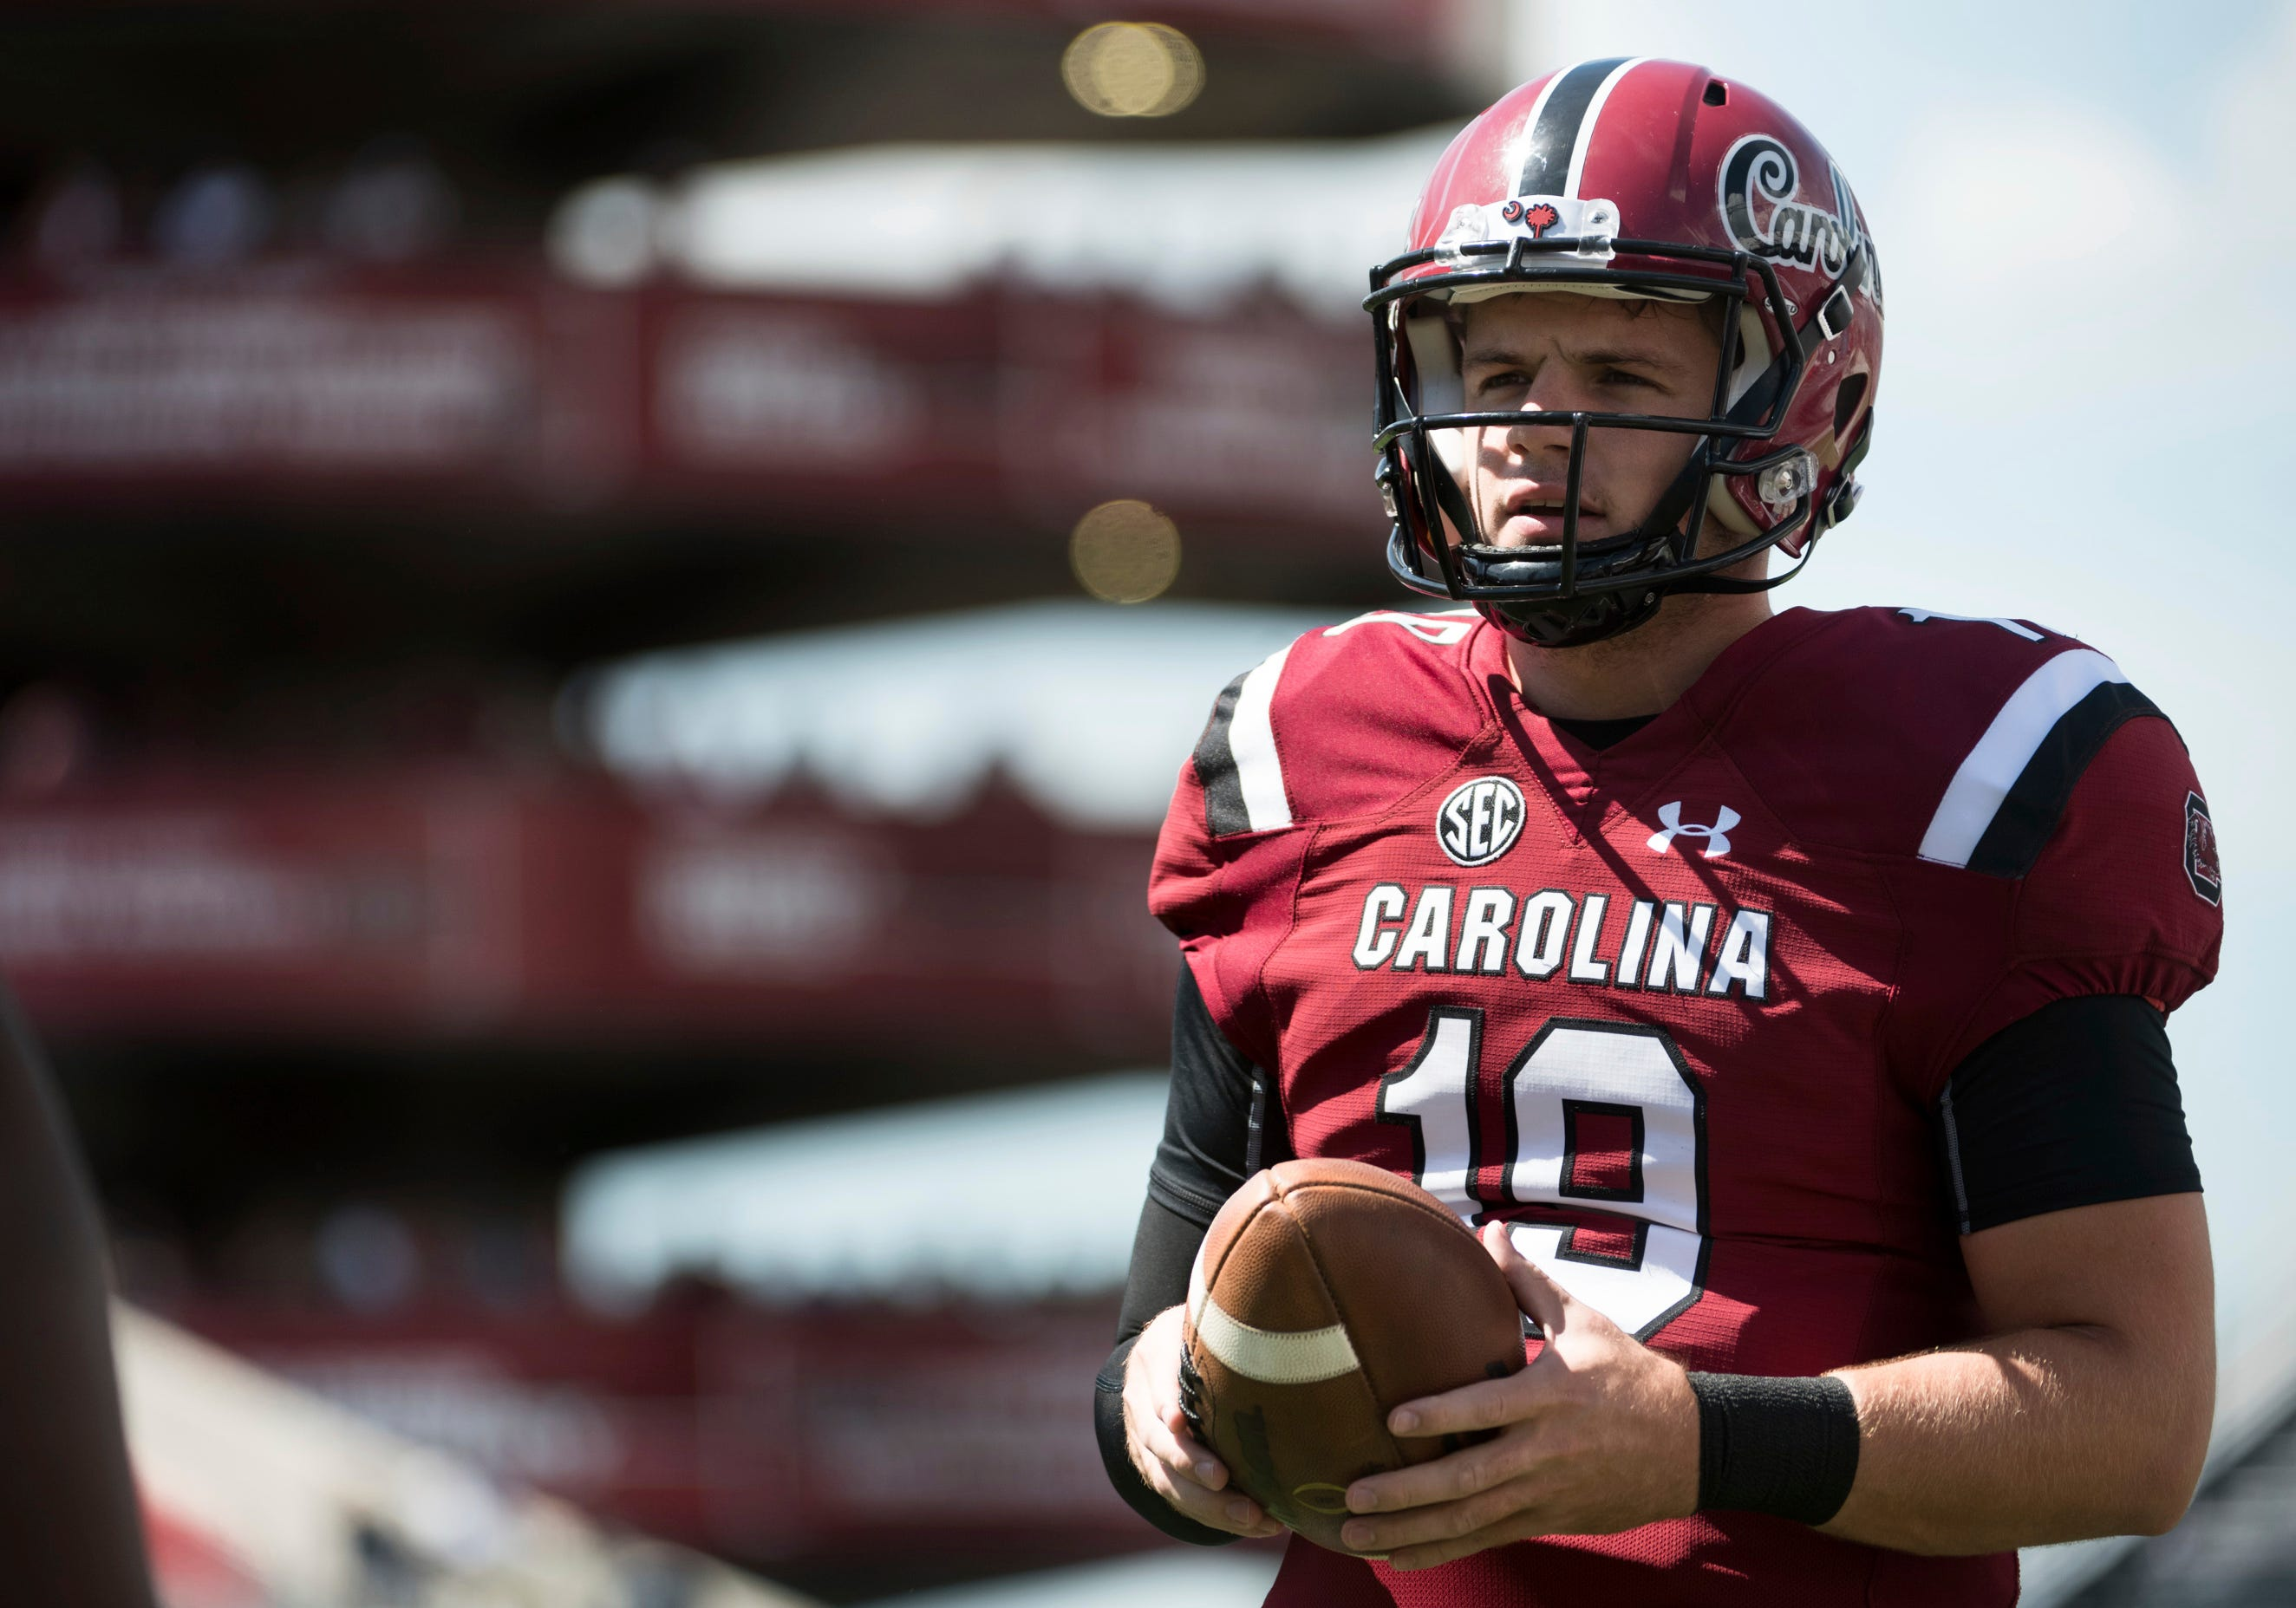 South Carolina quarterback Jake Bentley is one of 14 players from Opelika in major college football this season.